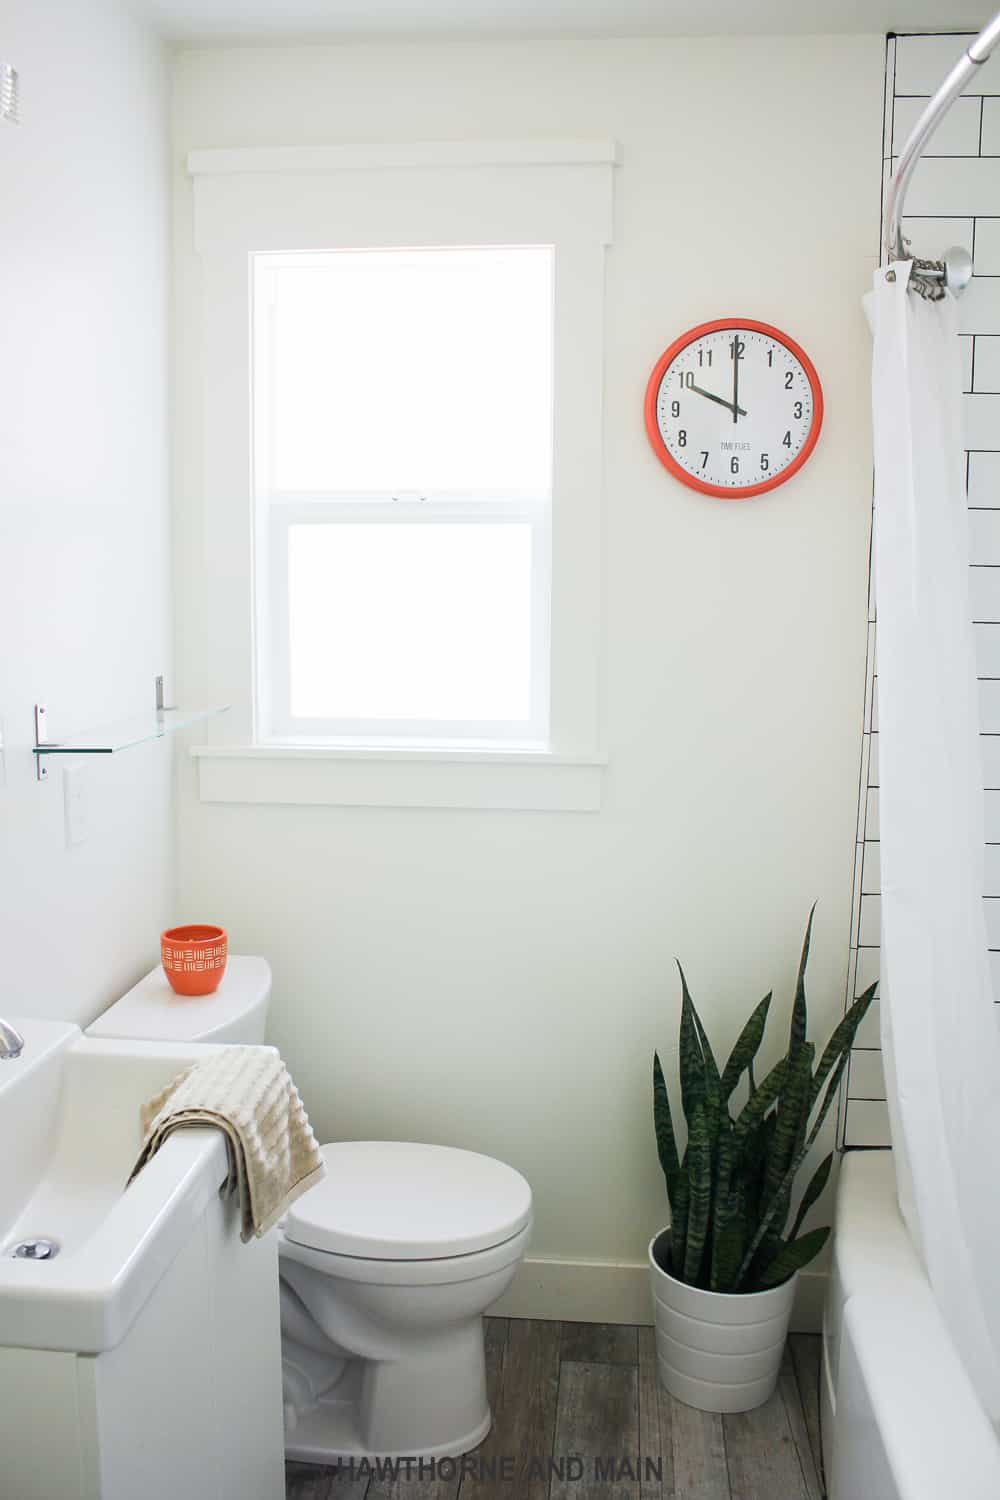 Check out this great IKEA clock makeover. It looks super easy and I love the custom text at the bottom. So fun. Time really flies by!